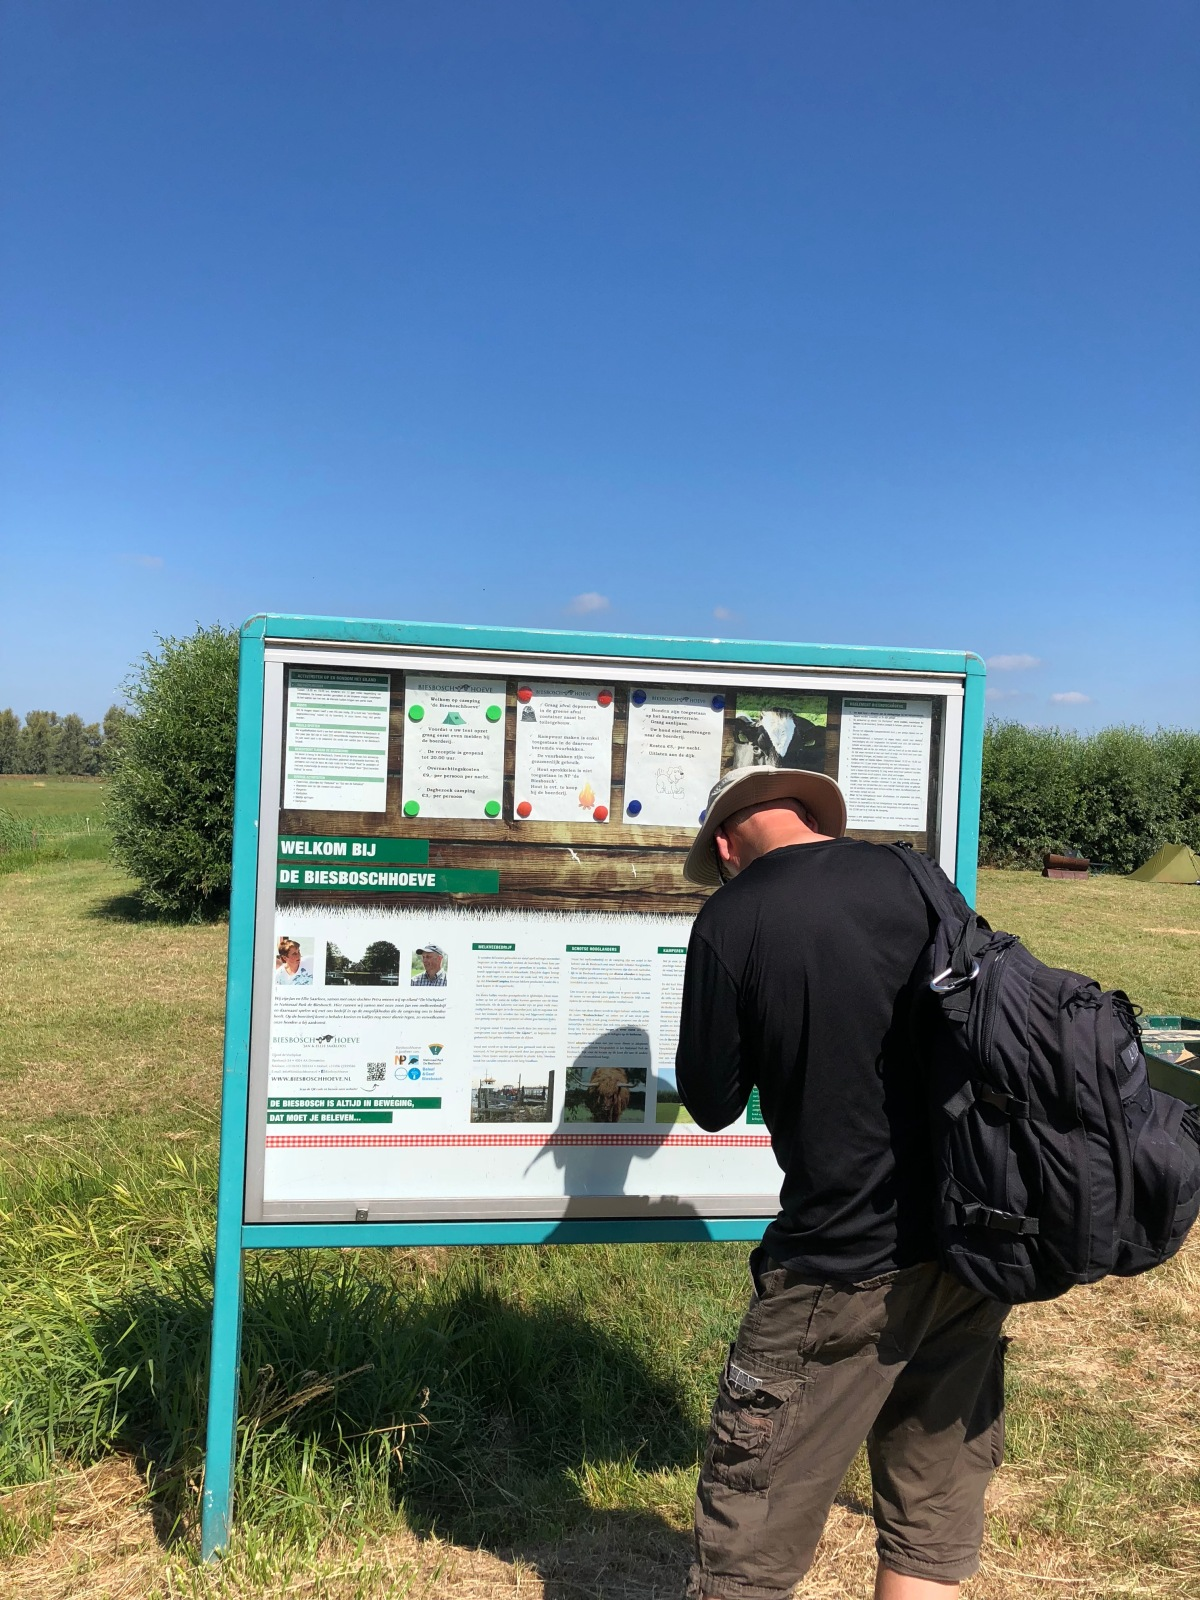 Information board for the Biesbosch Hoeve